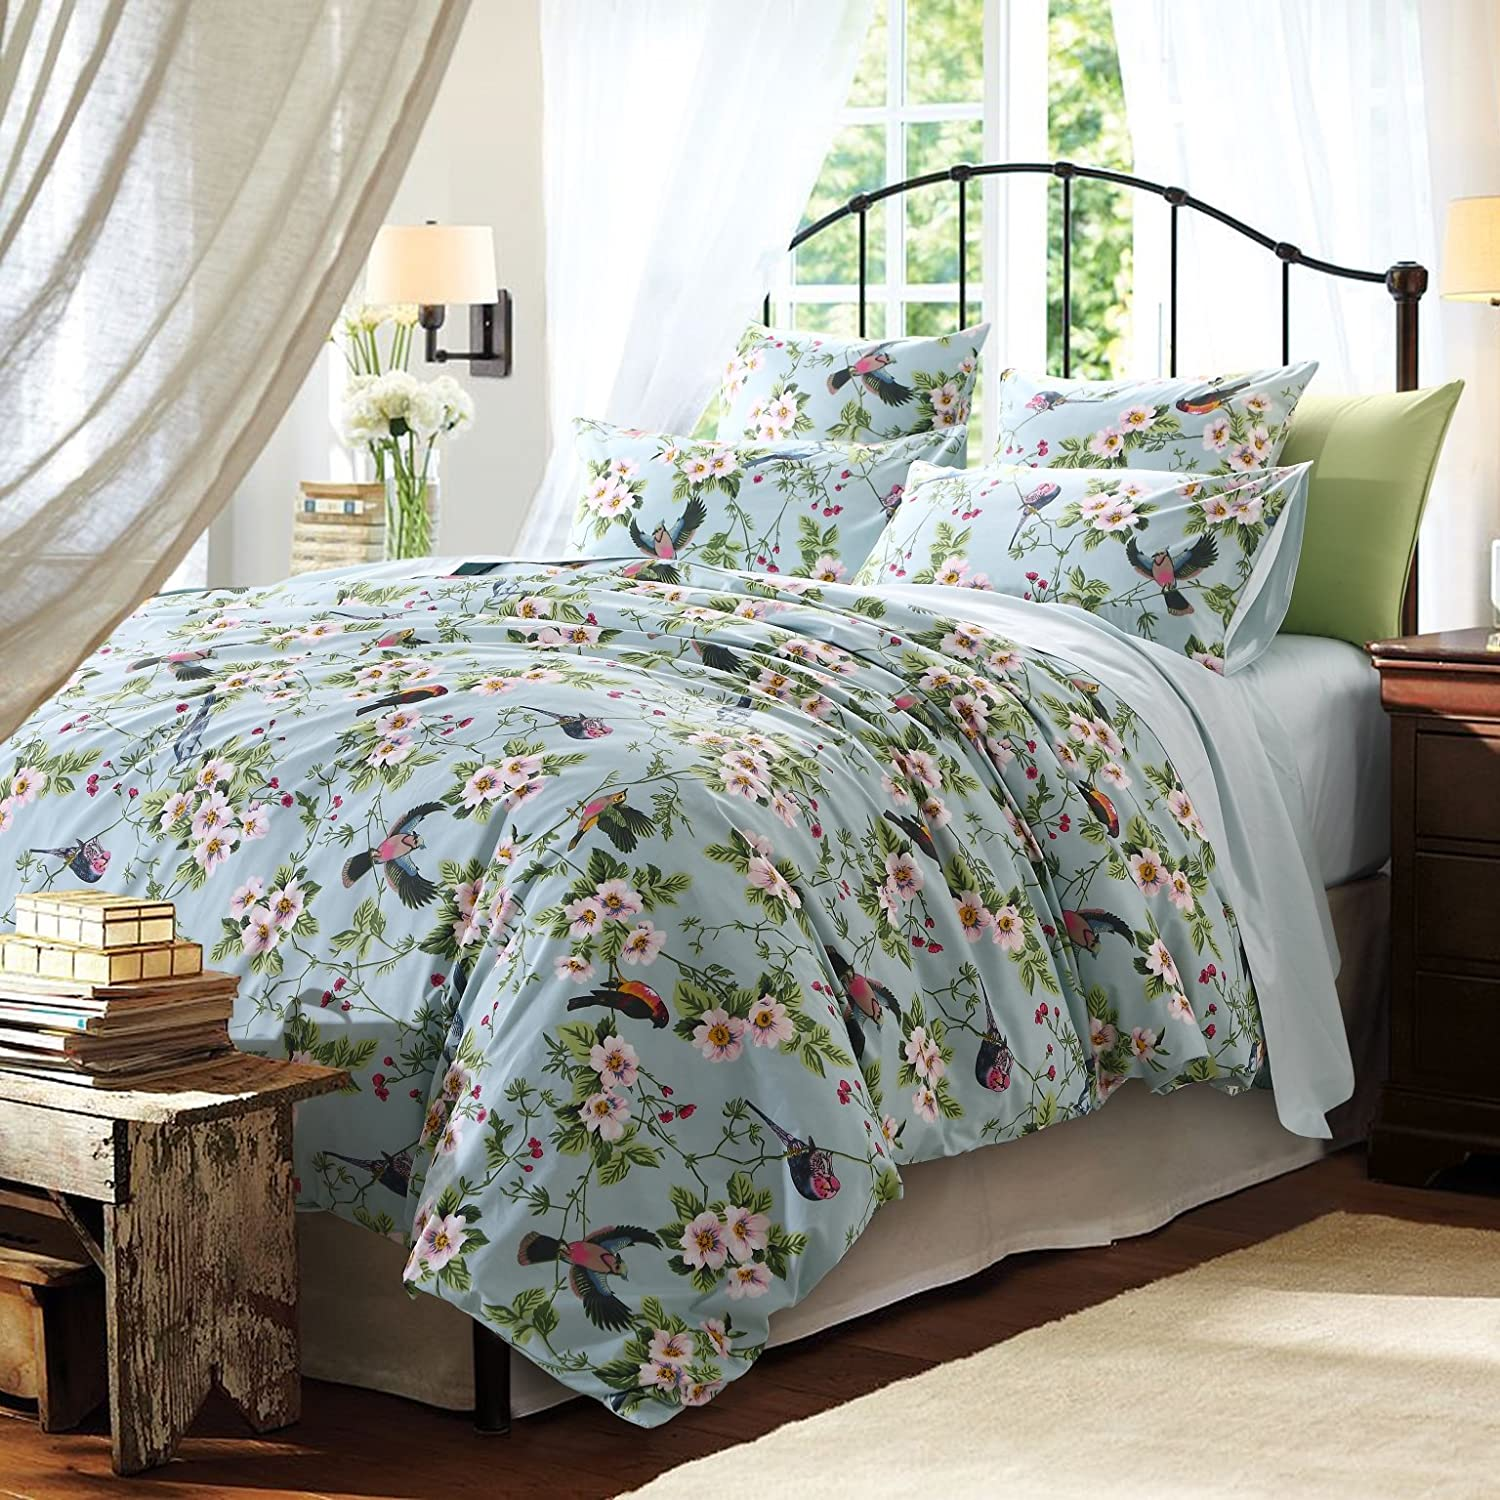 Brandream Floral Bedding Set Pastoral Style Duvet Cover Set with Colorful Flowers and Birds 3pcs Bedding